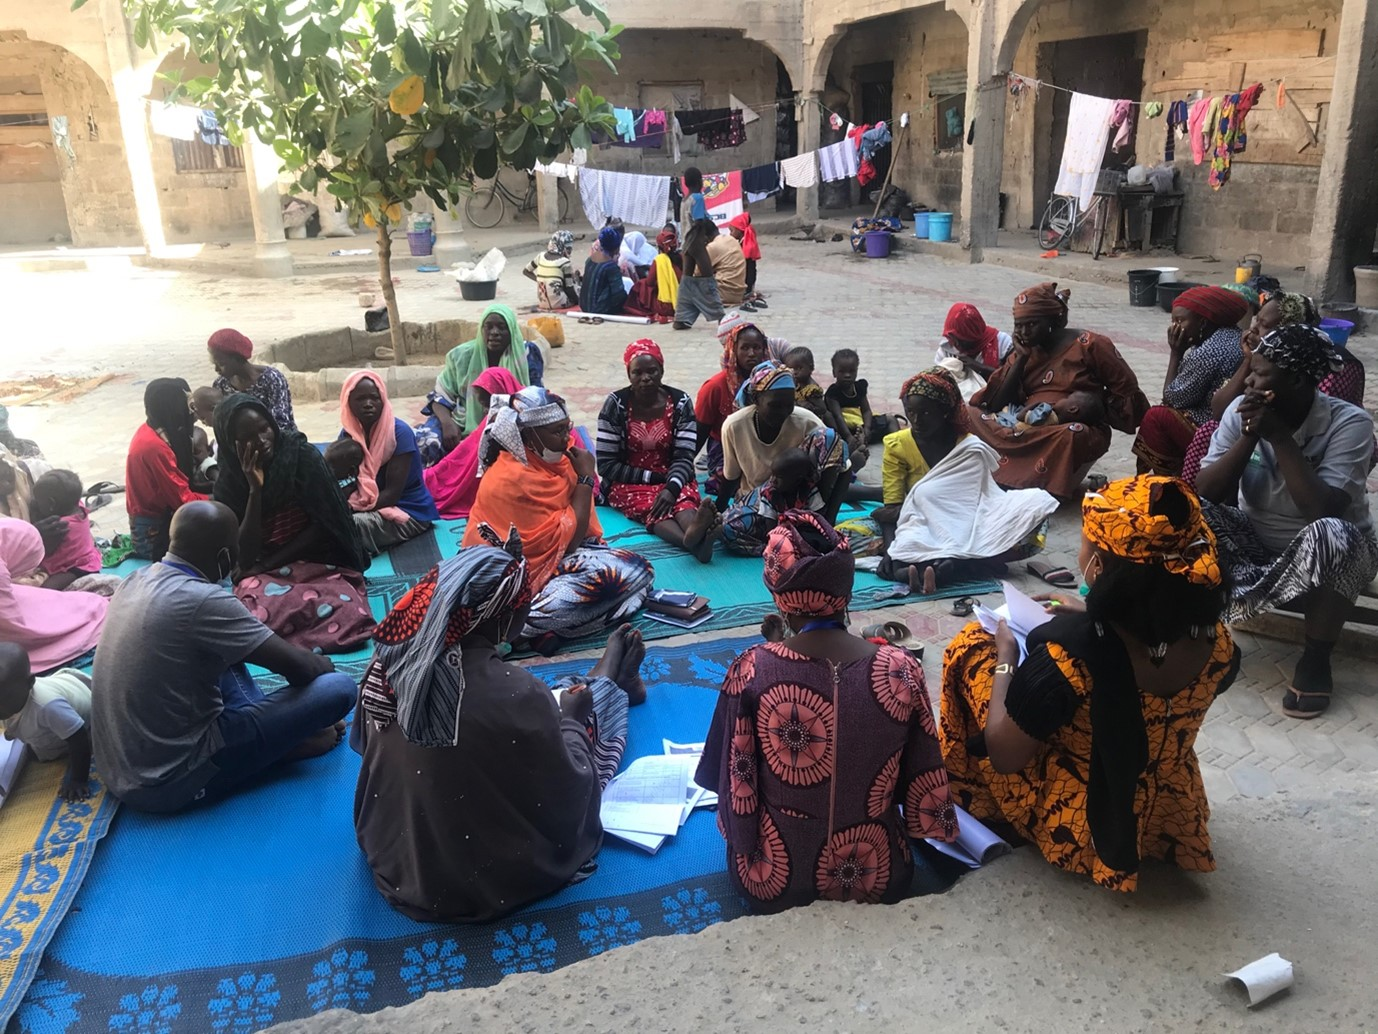 ACN: Aid for the victims of Boko Haram